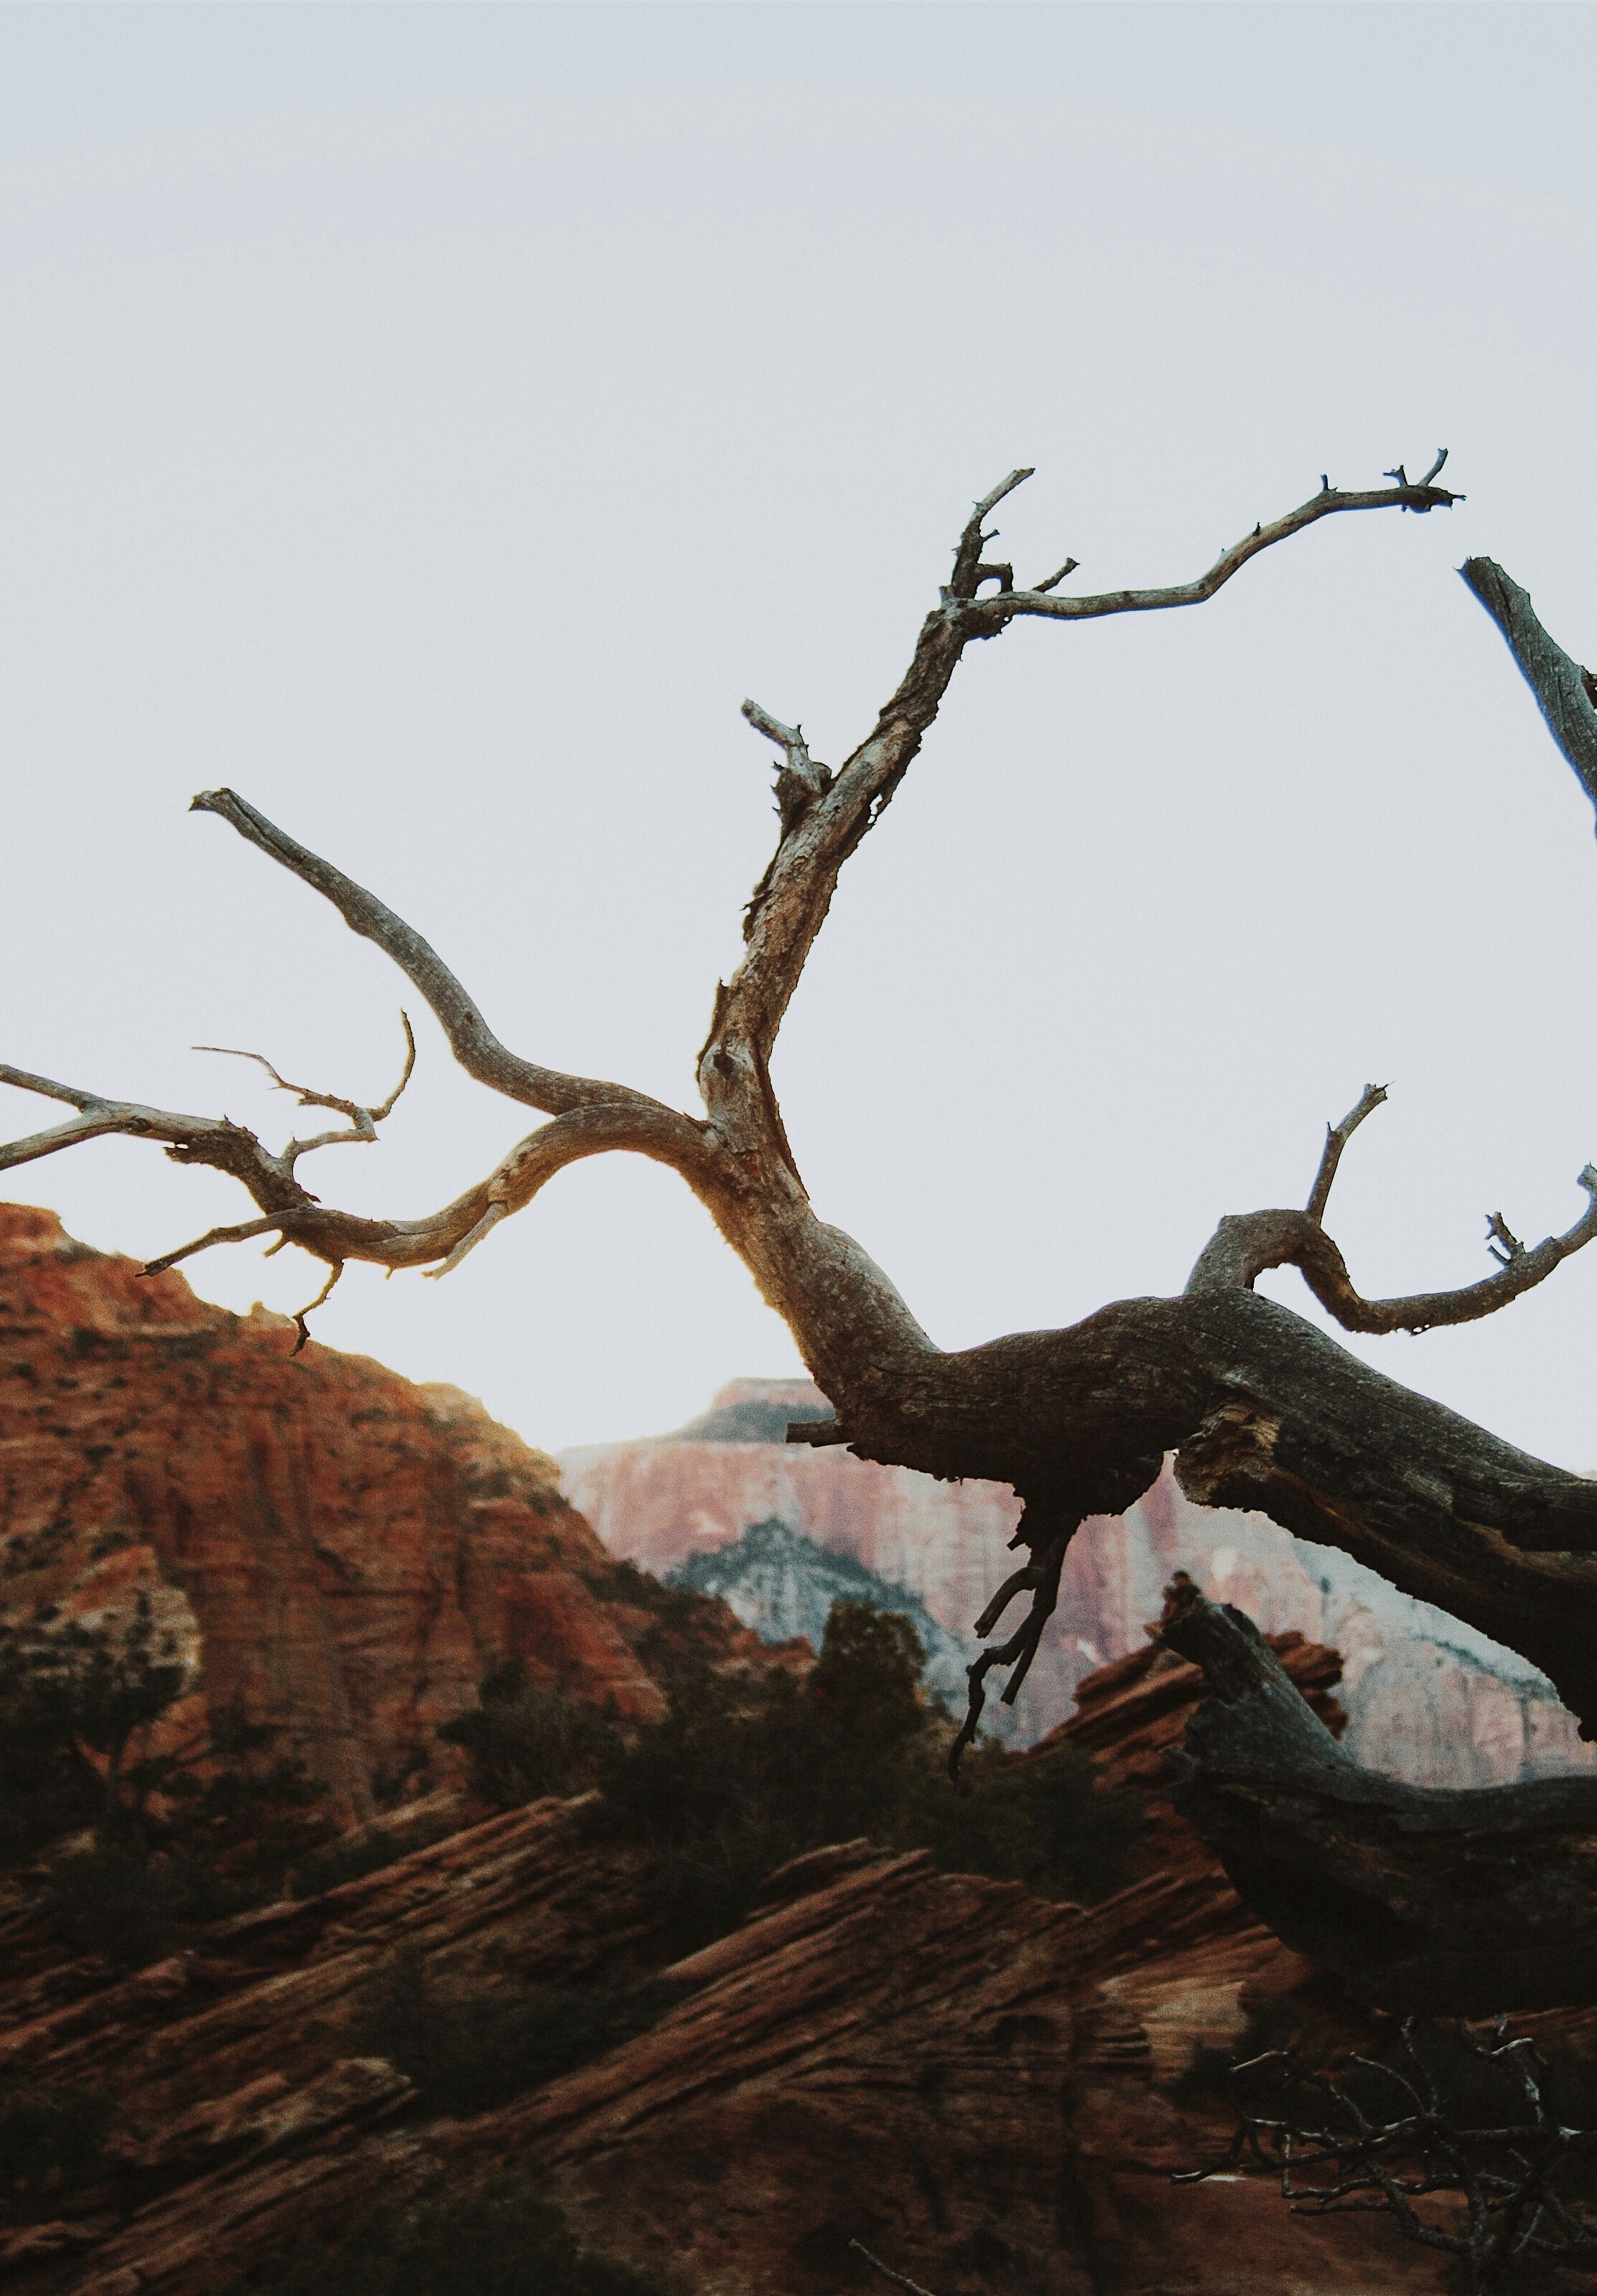 bare tree near mountains during daytime